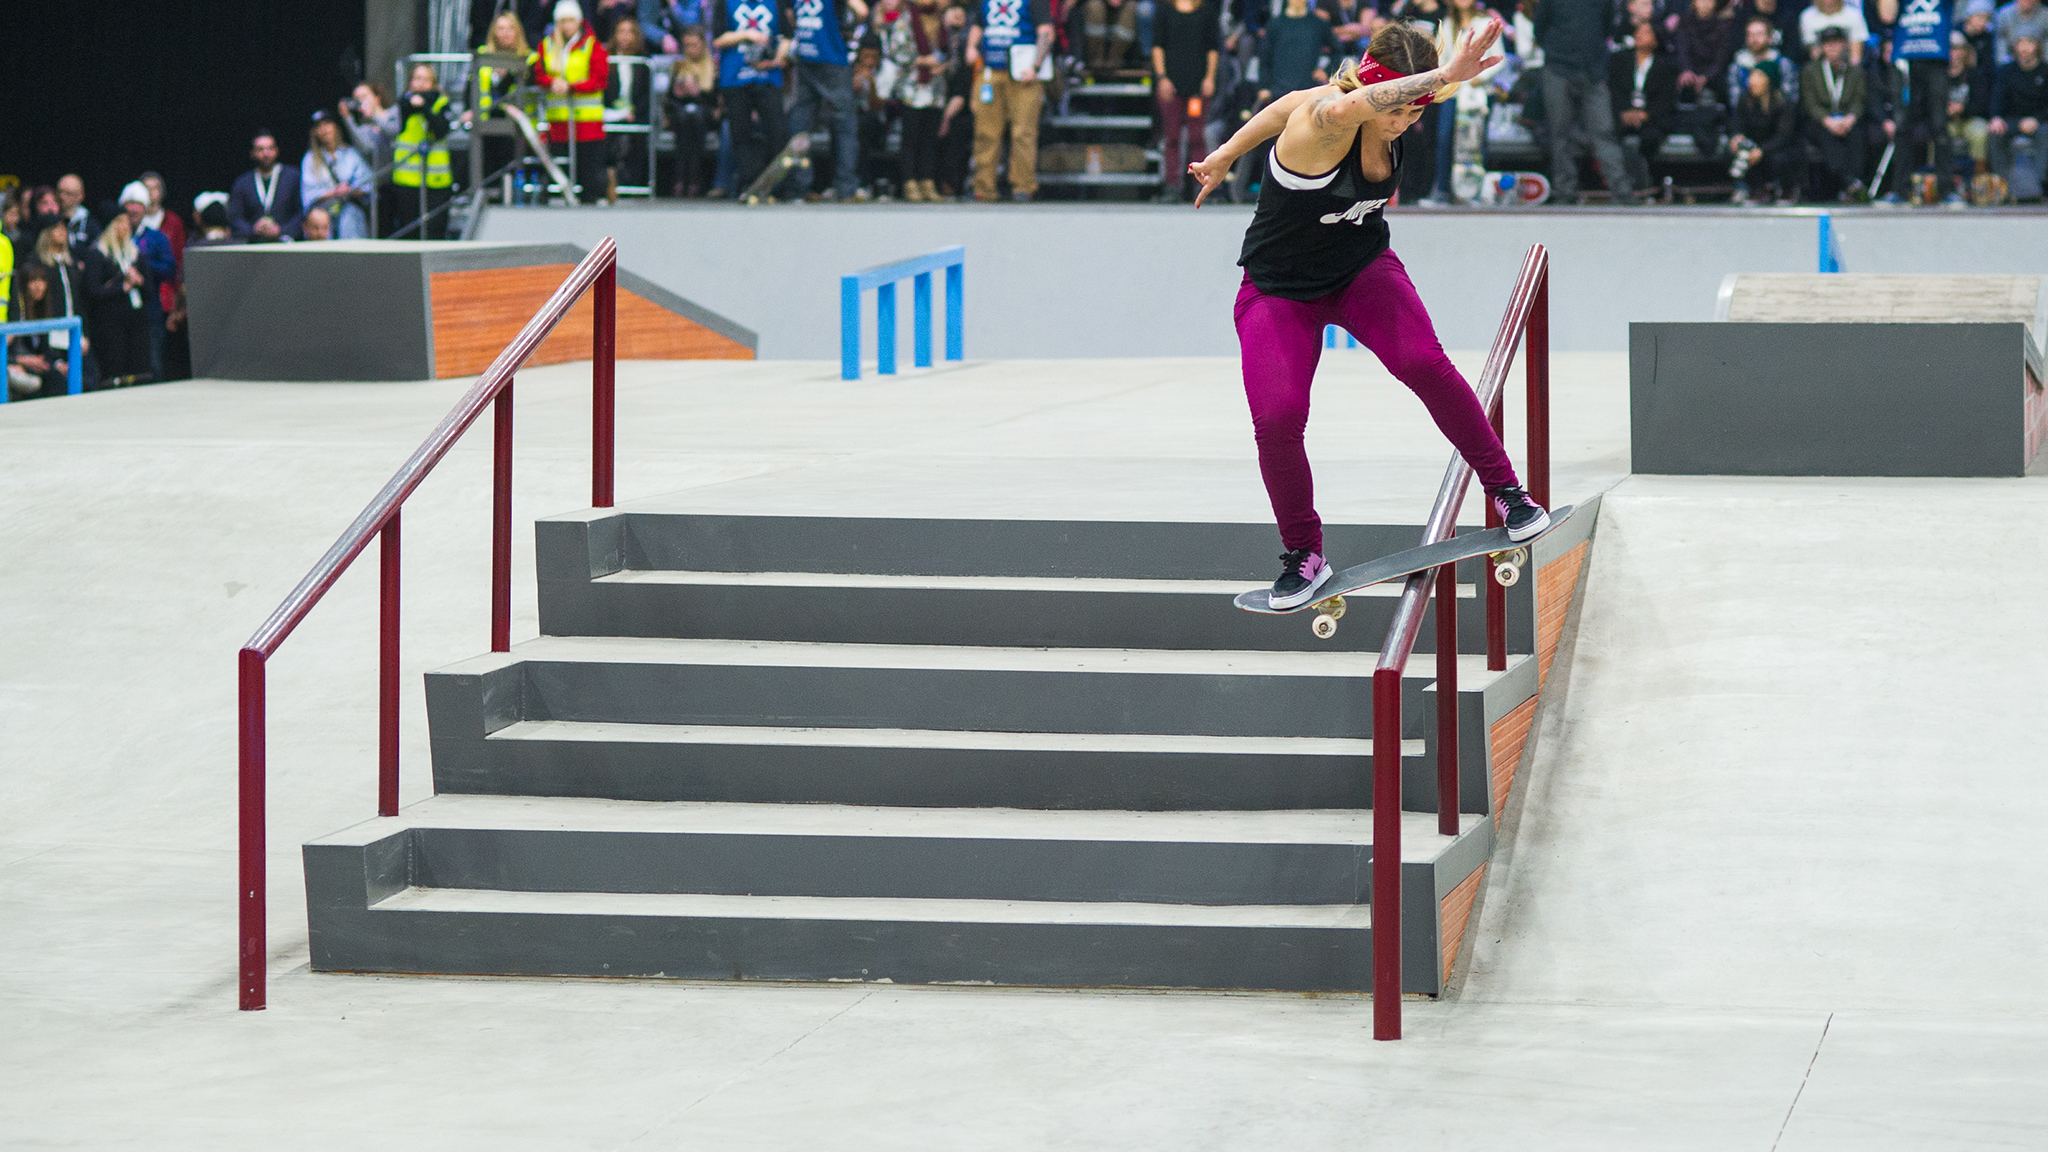 Leticia Bufoni is on the list of athletes invited to compete at X Games Norway 2018.